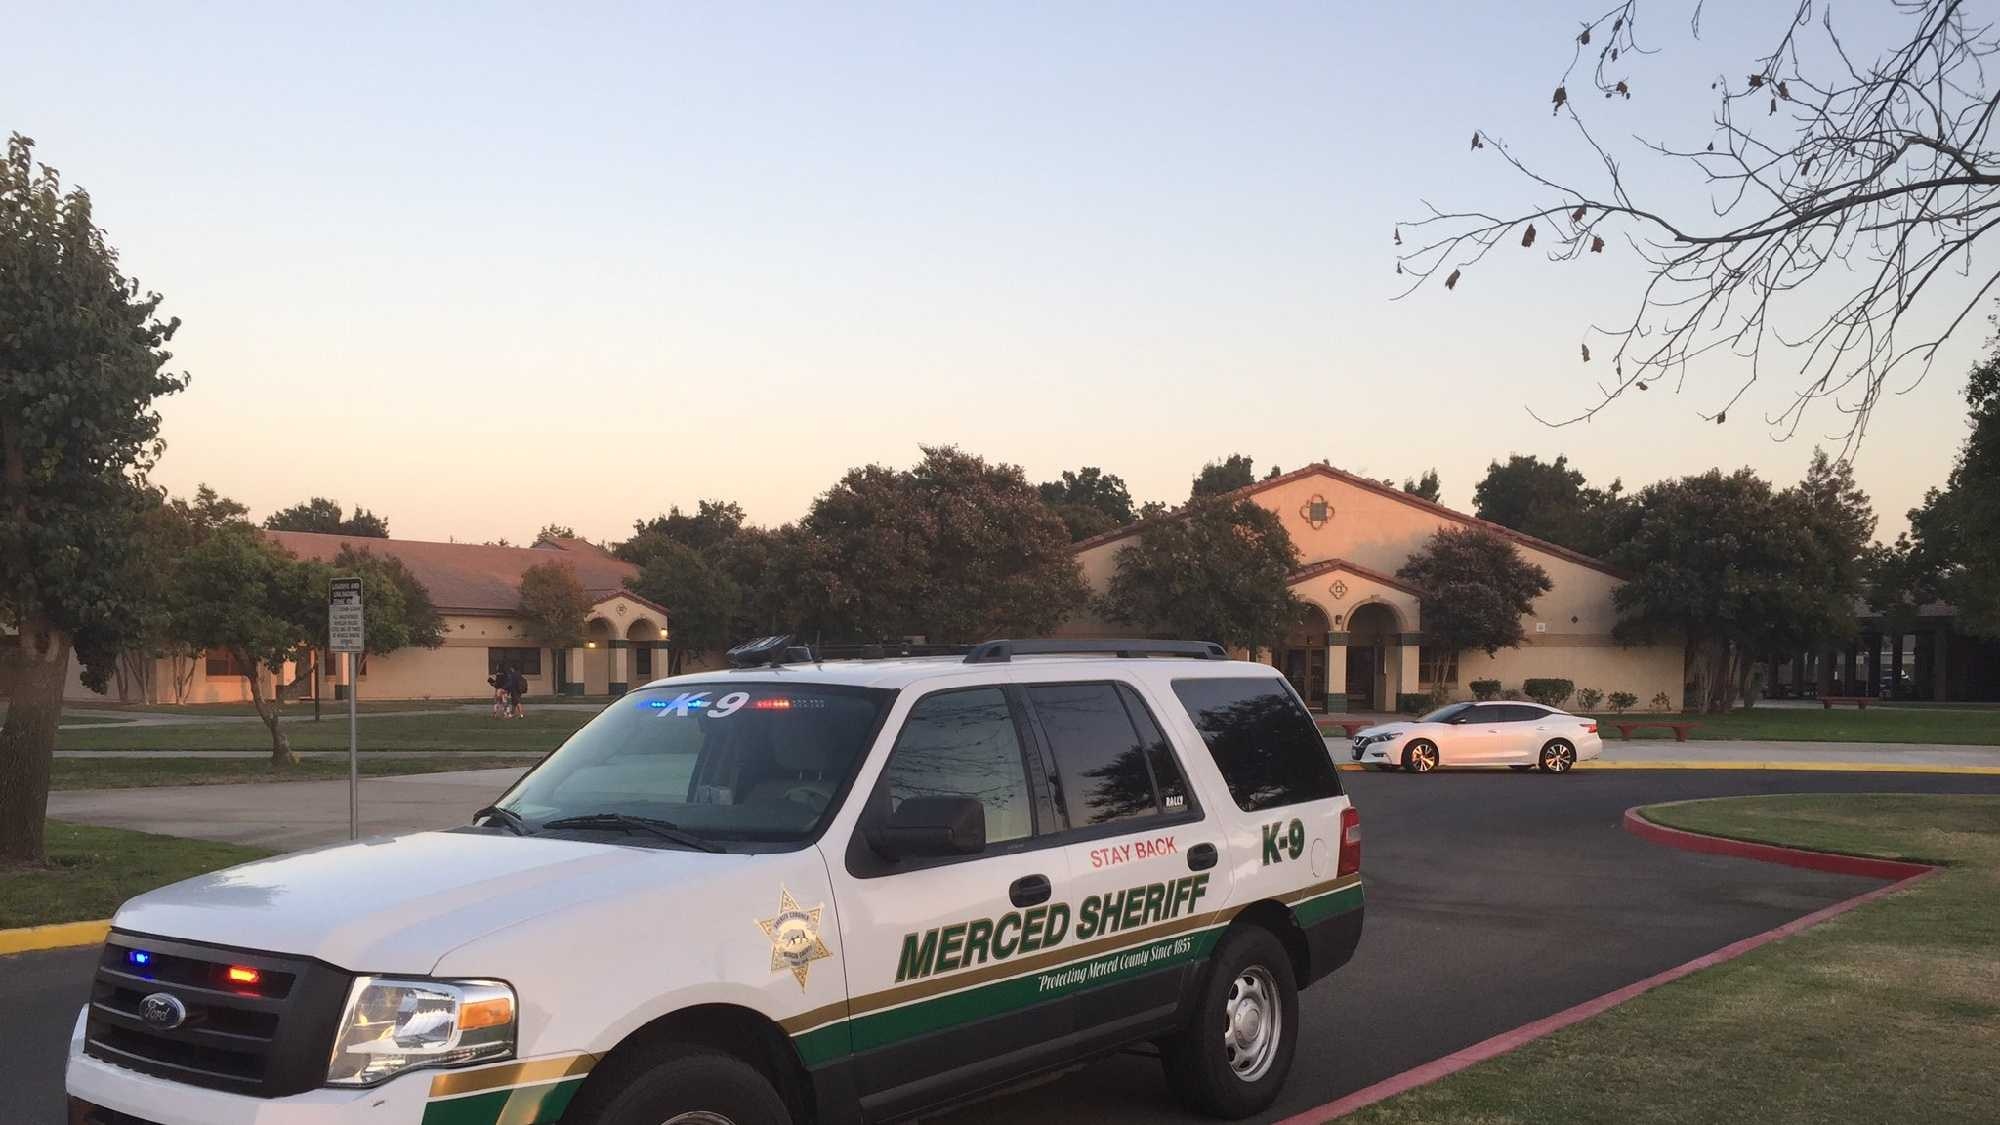 The Merced County Sheriff's Department is investigating a shooting in which a deputy was wounded on Thursday, Sept. 8, 2016.